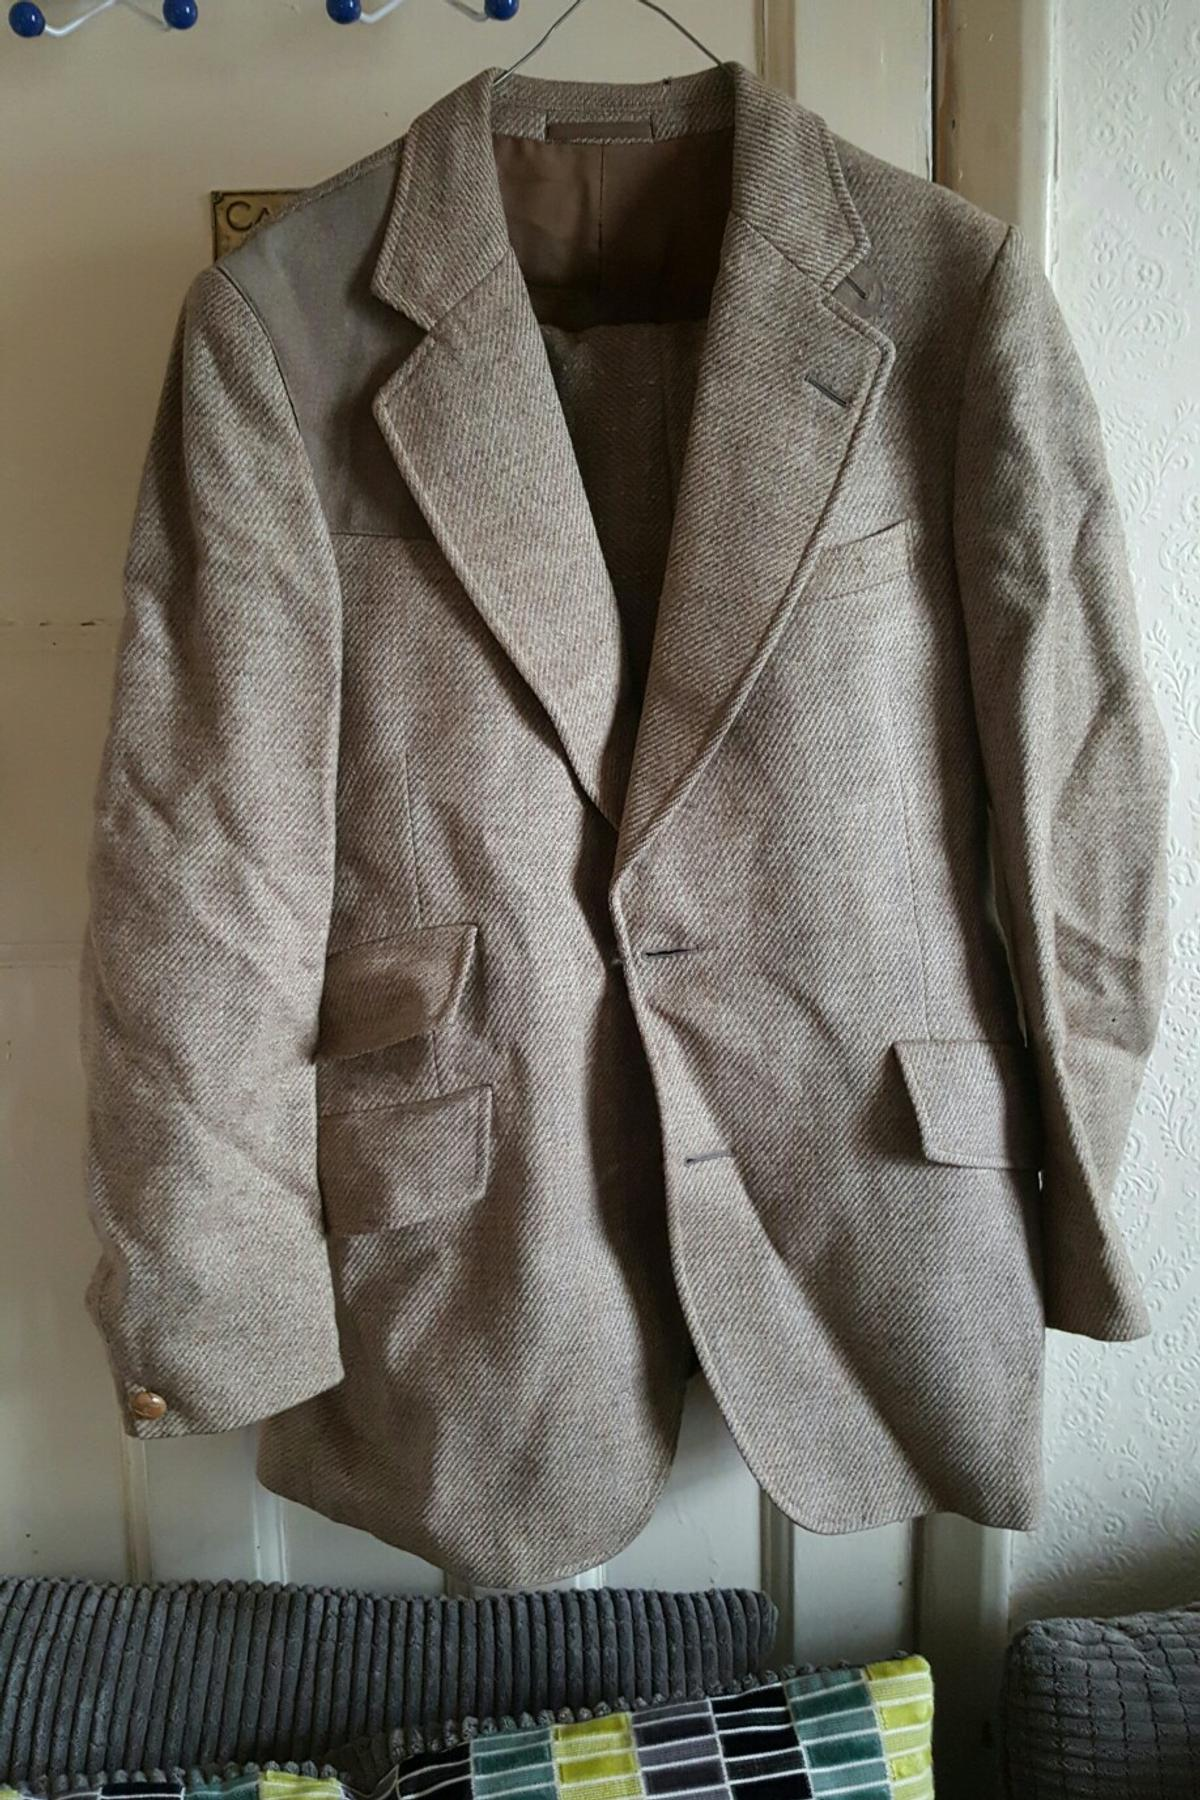 Pure New Wool Suit In Sw16 London For 79 00 For Sale Shpock